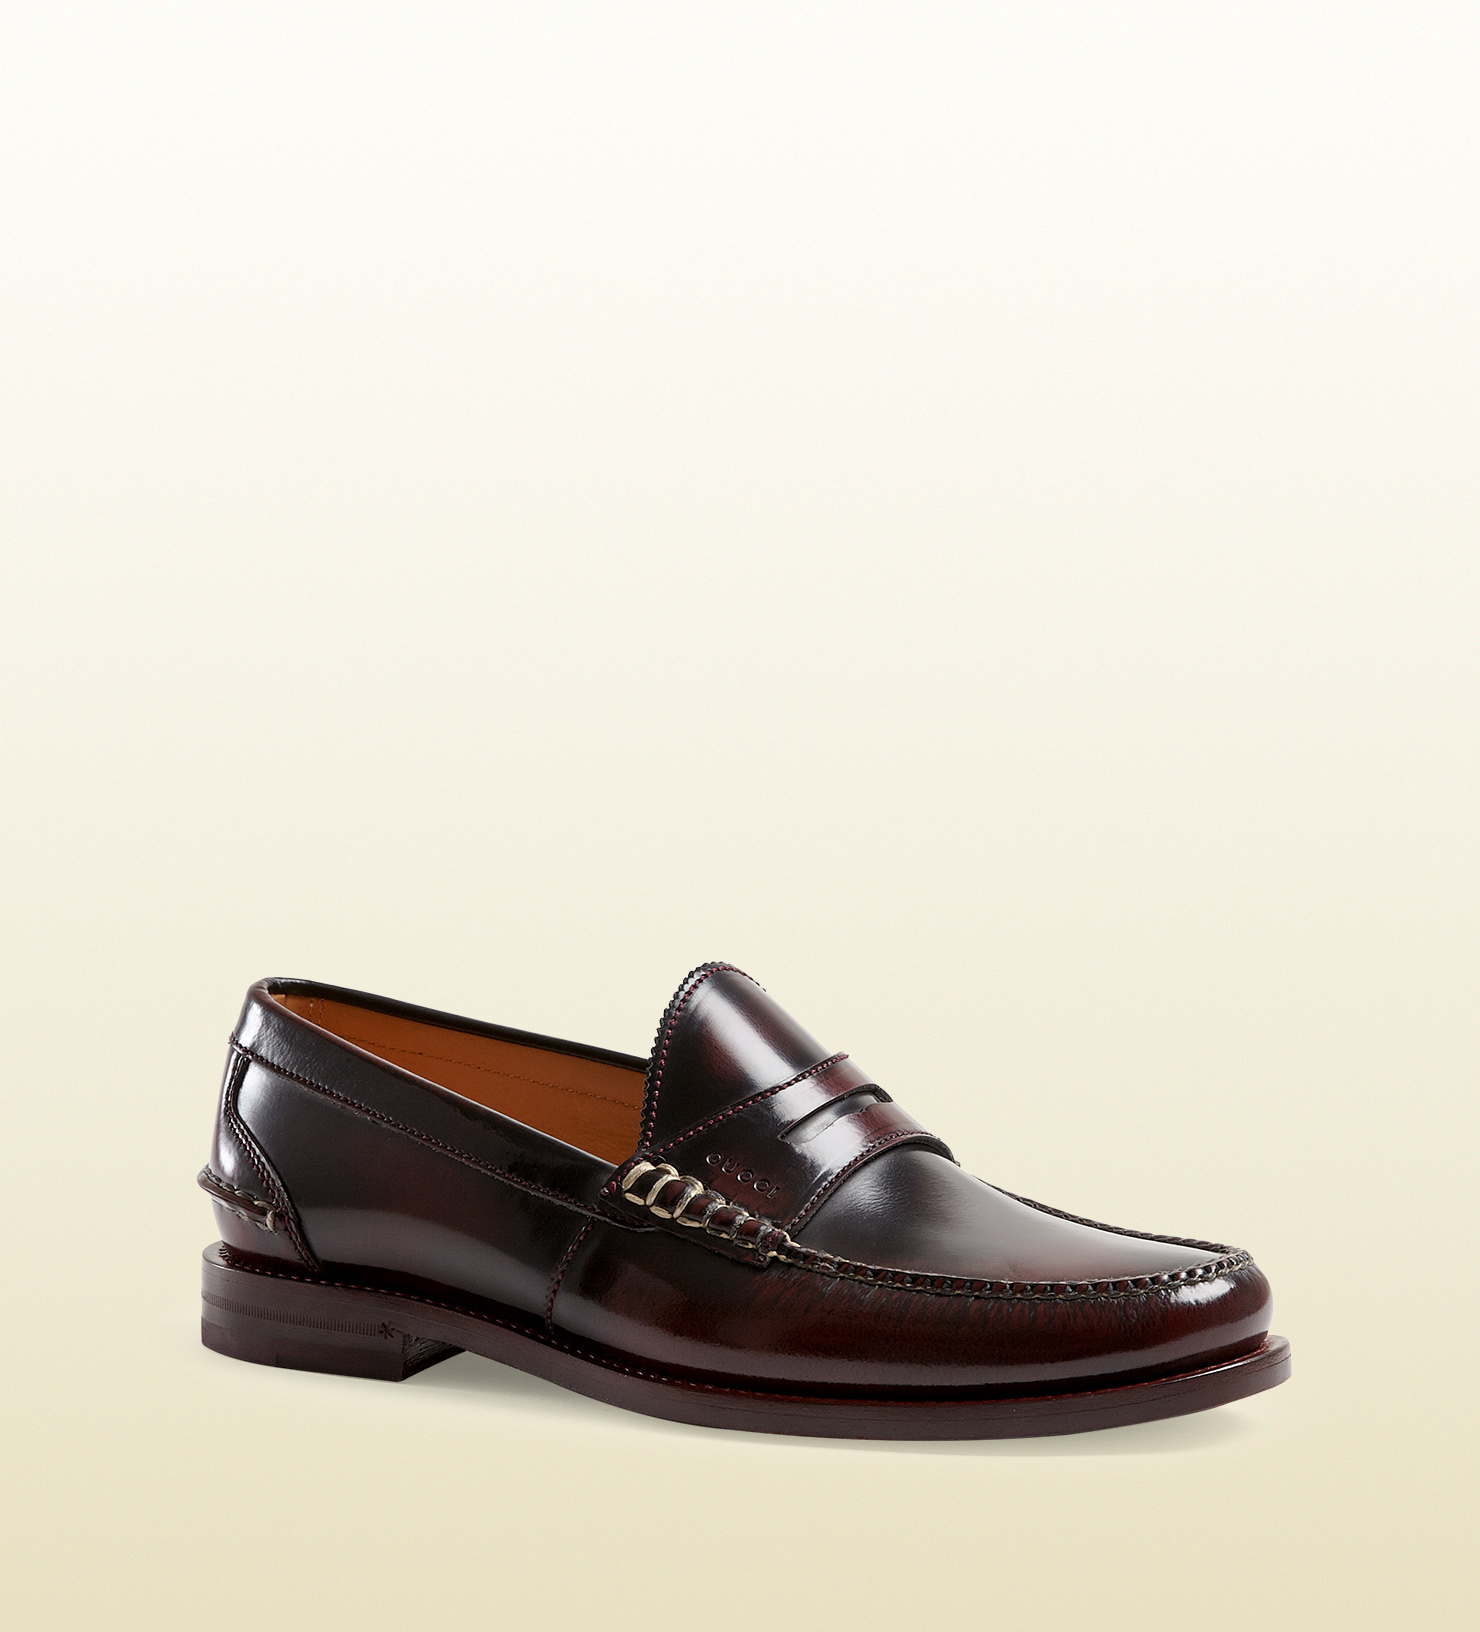 e4ebc91cb14 Lyst - Gucci Polished Leather Penny Loafer in Purple for Men